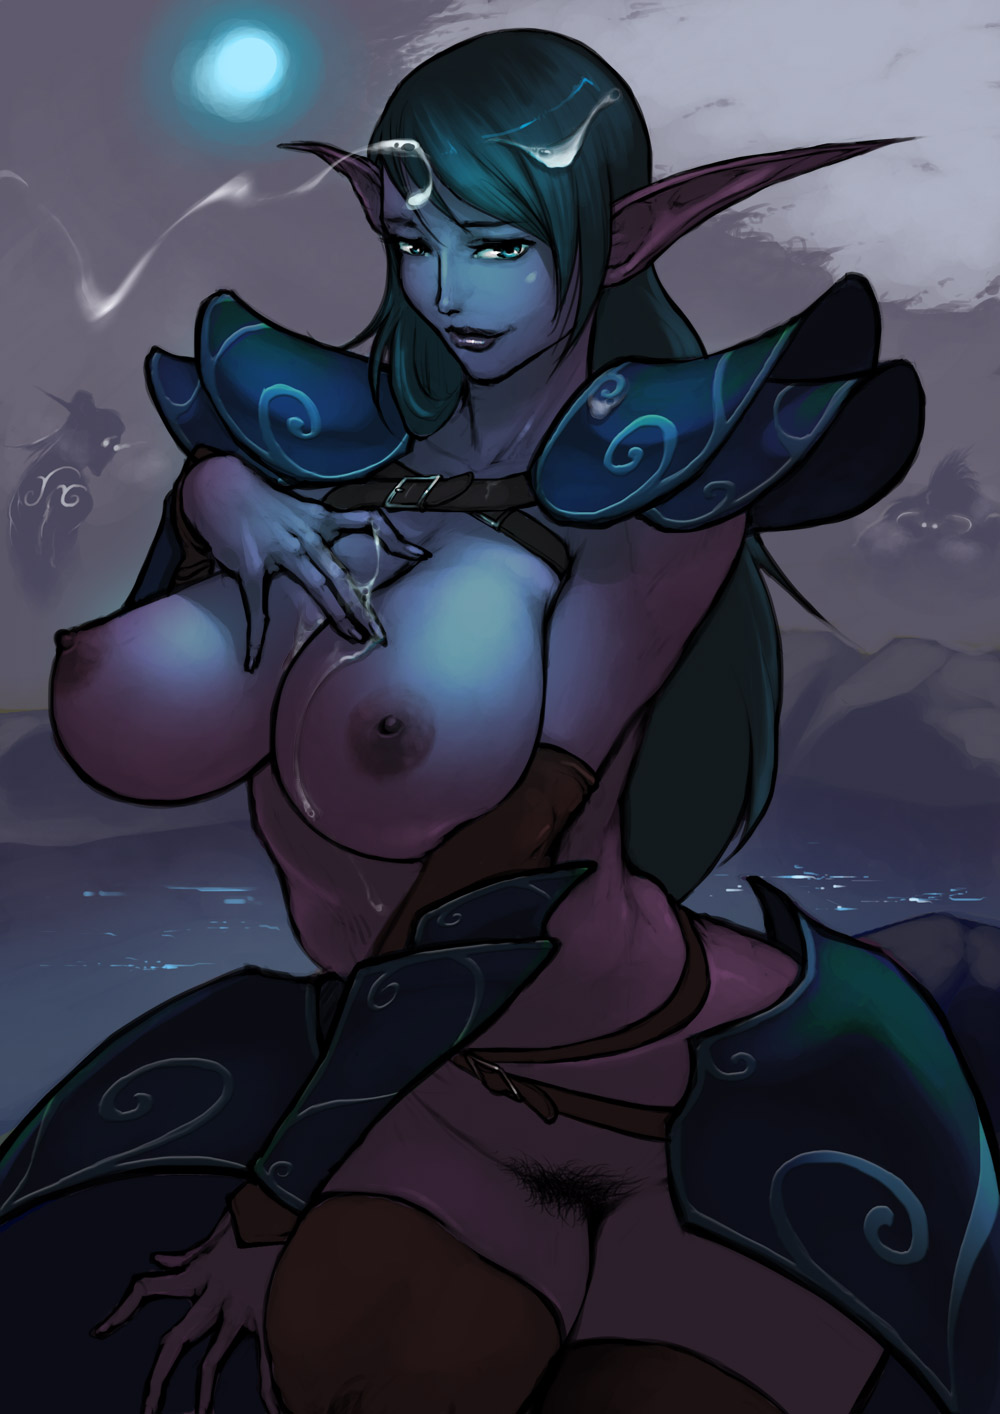 Sex nightelf wow porn hentai nsfw video